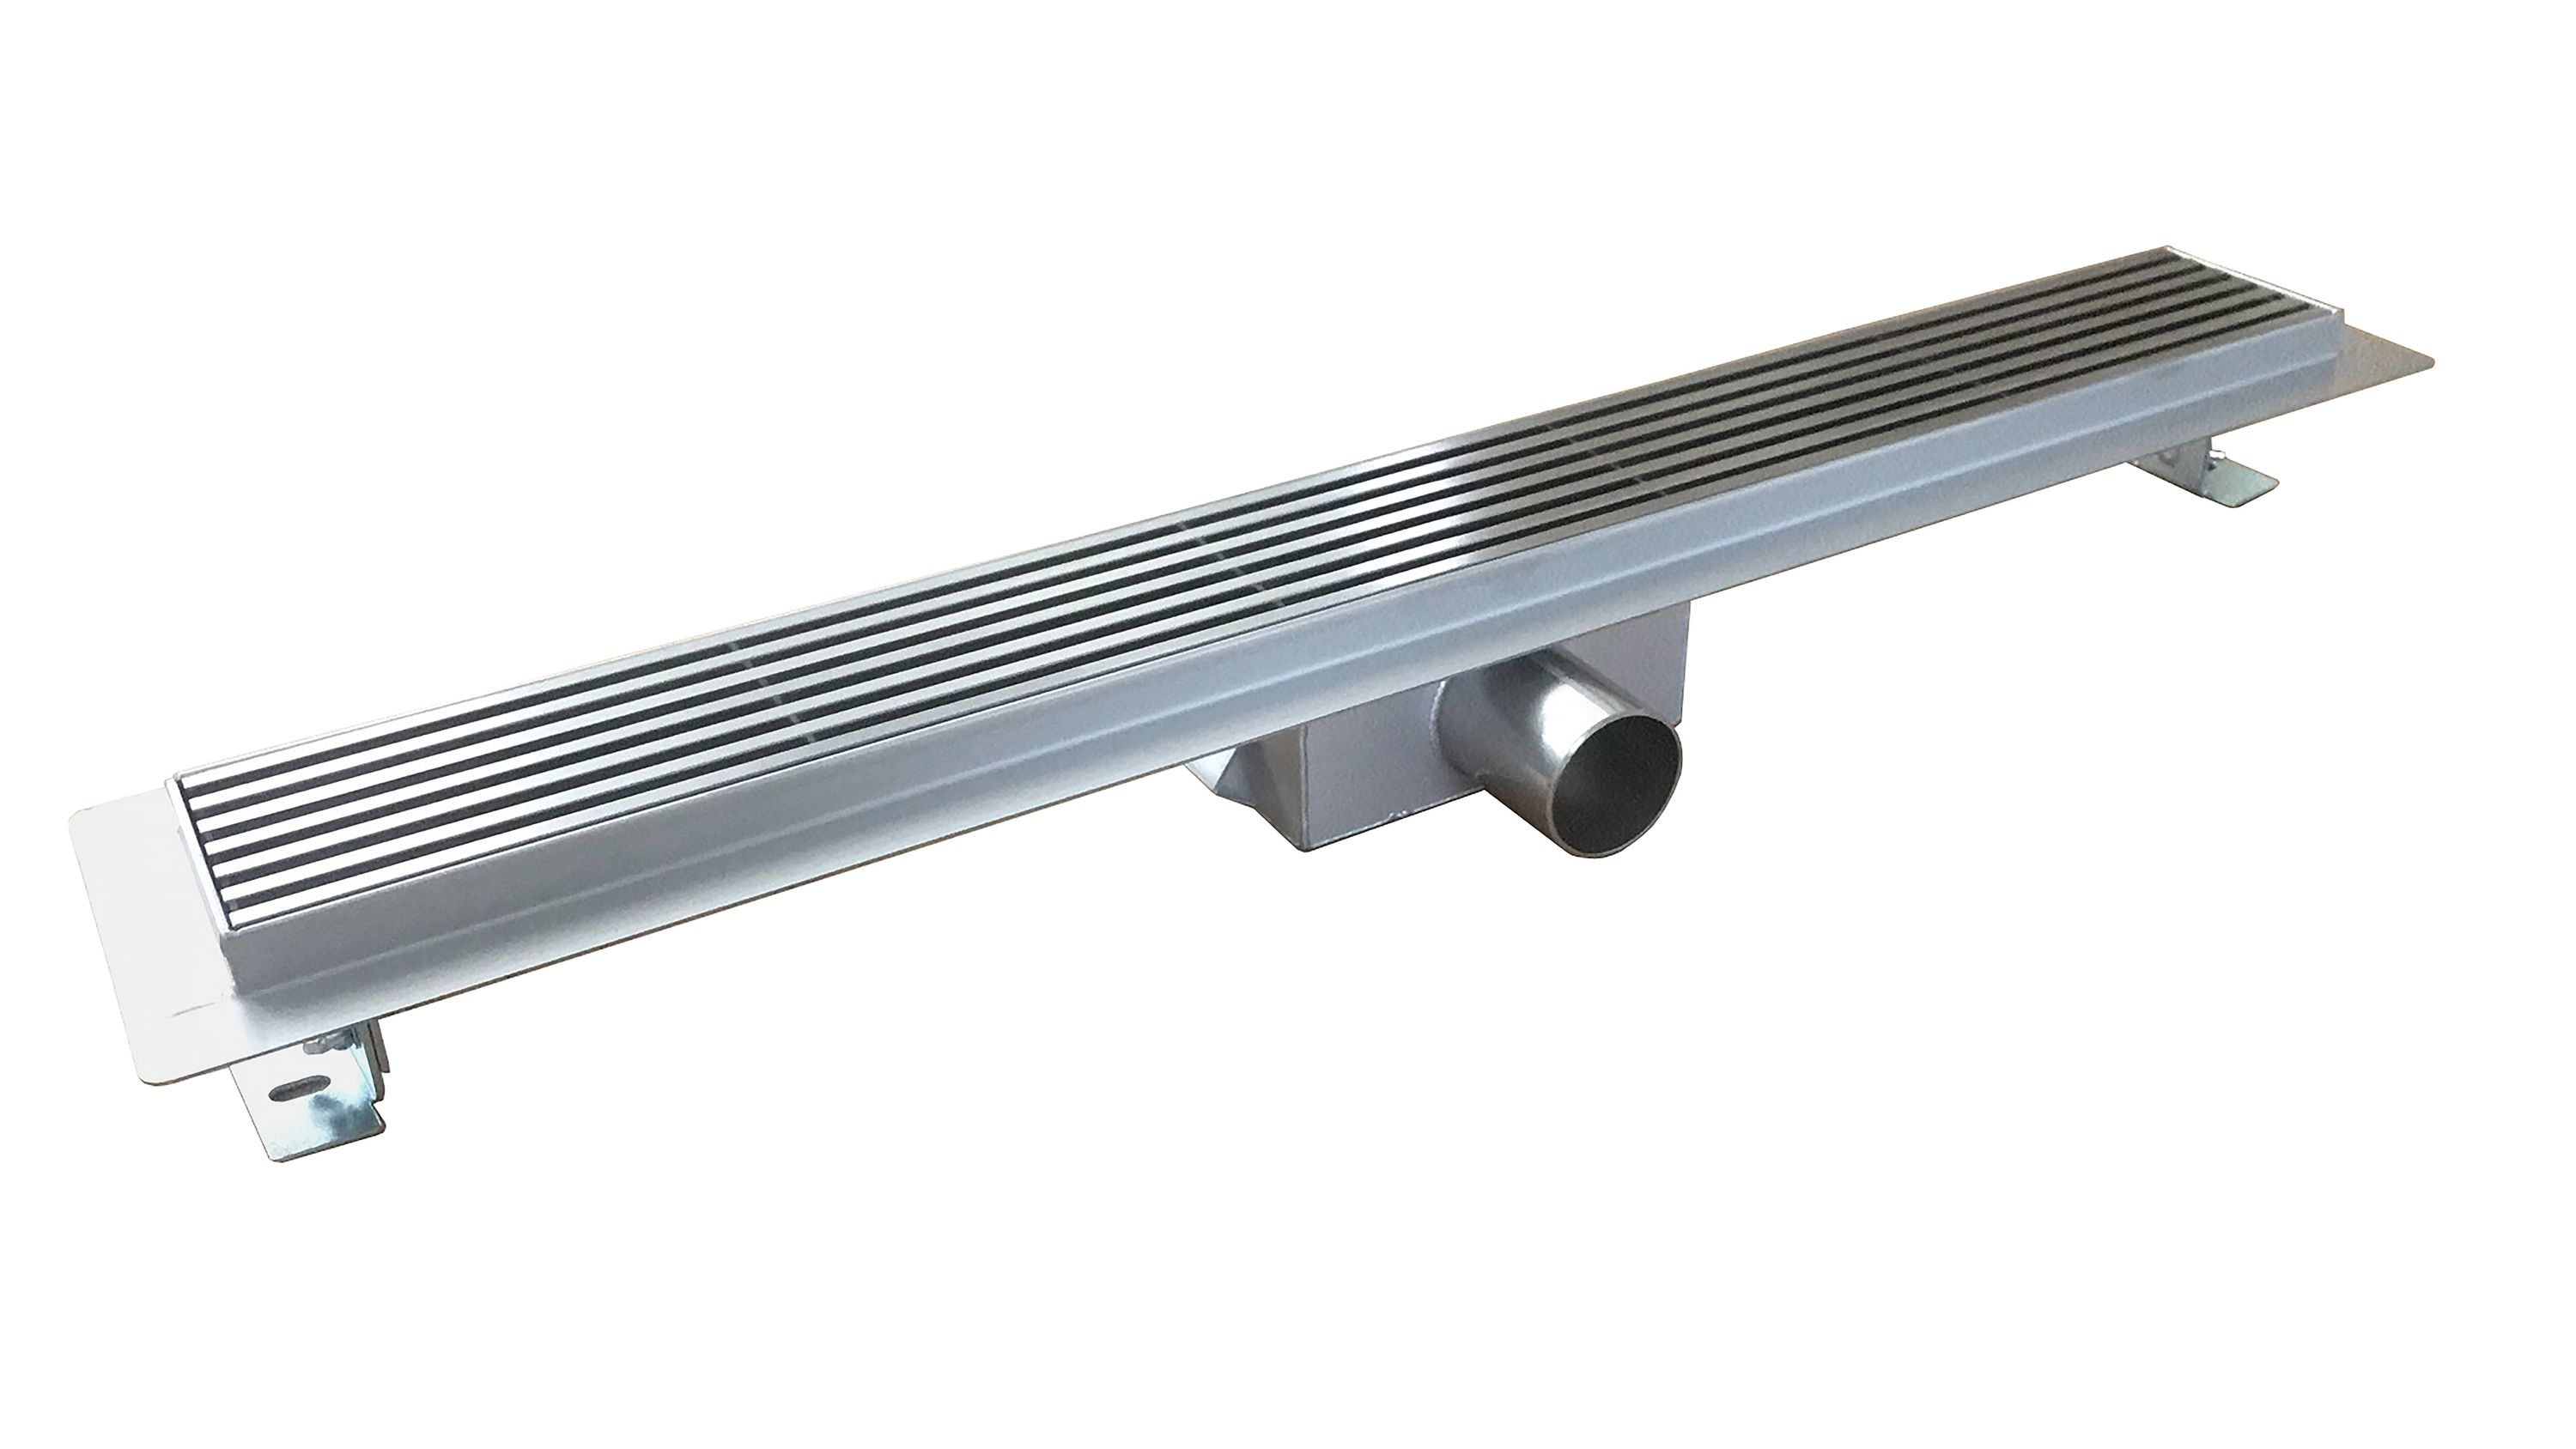 Duschrinne 80 Cm Stainless Steel Shower Drain H01 High Speed For Walk In Shower